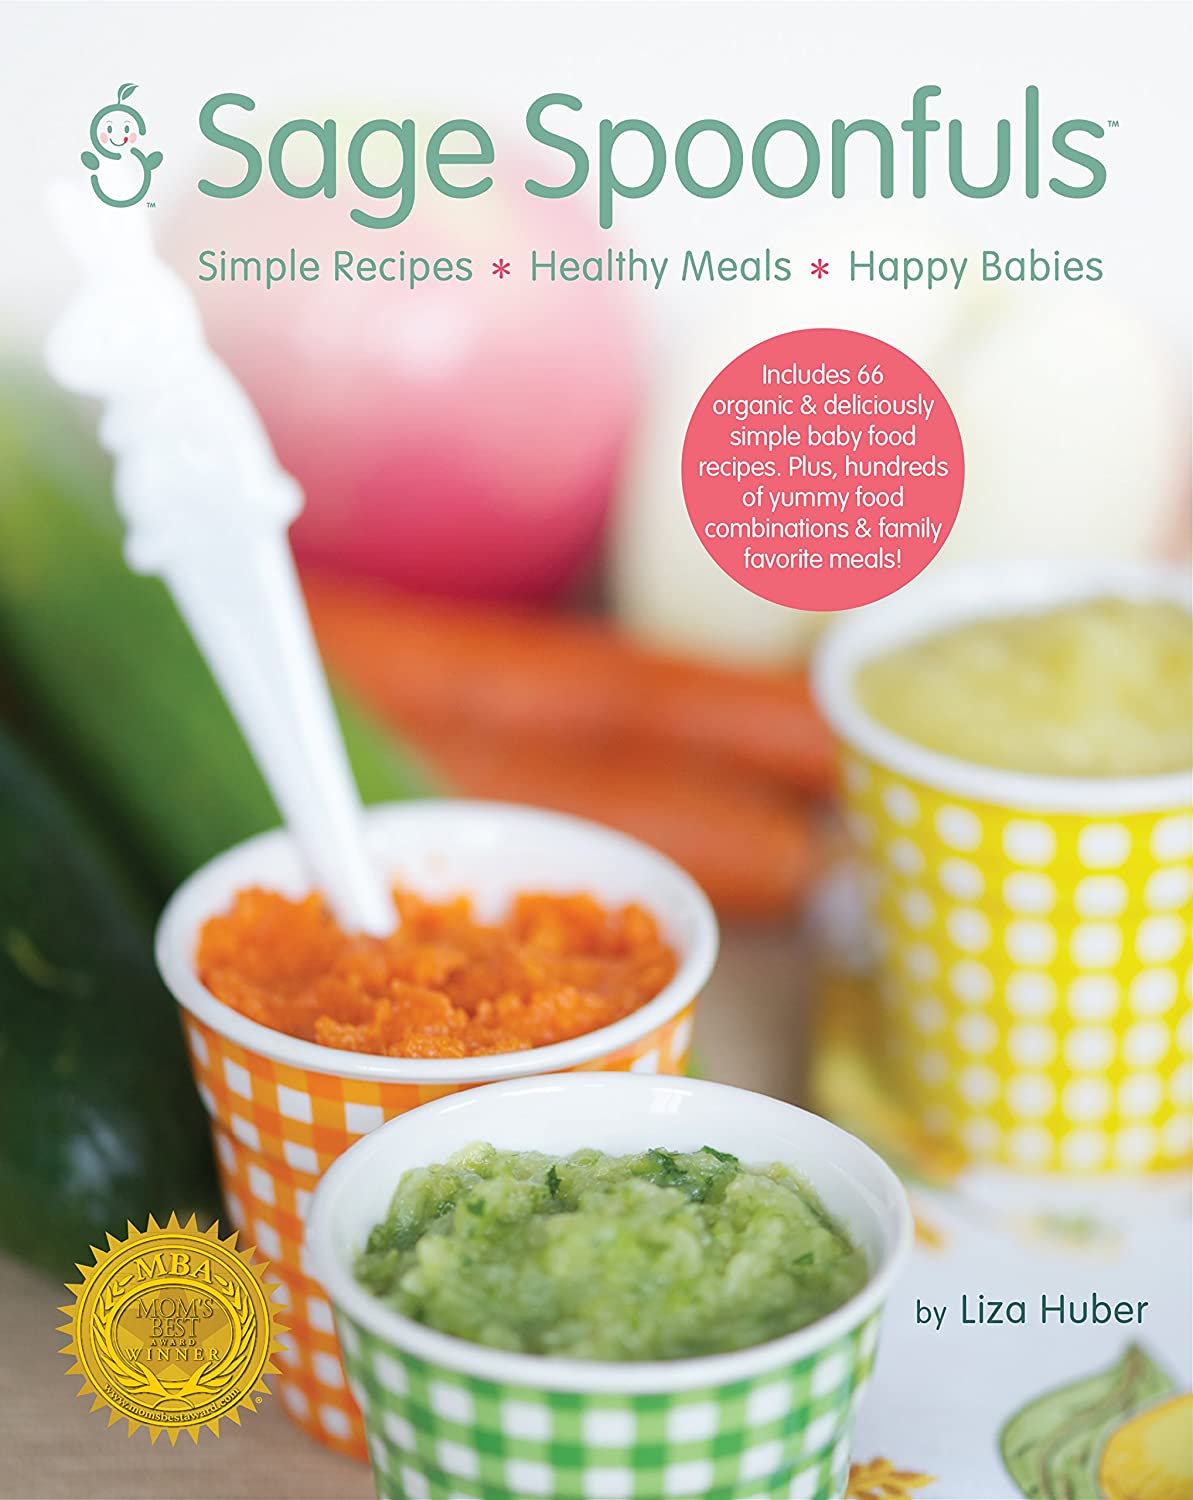 Amazon sage spoonfuls organic and deliciously simple baby food amazon sage spoonfuls organic and deliciously simple baby food and yummy family favorite recipes baby forumfinder Gallery